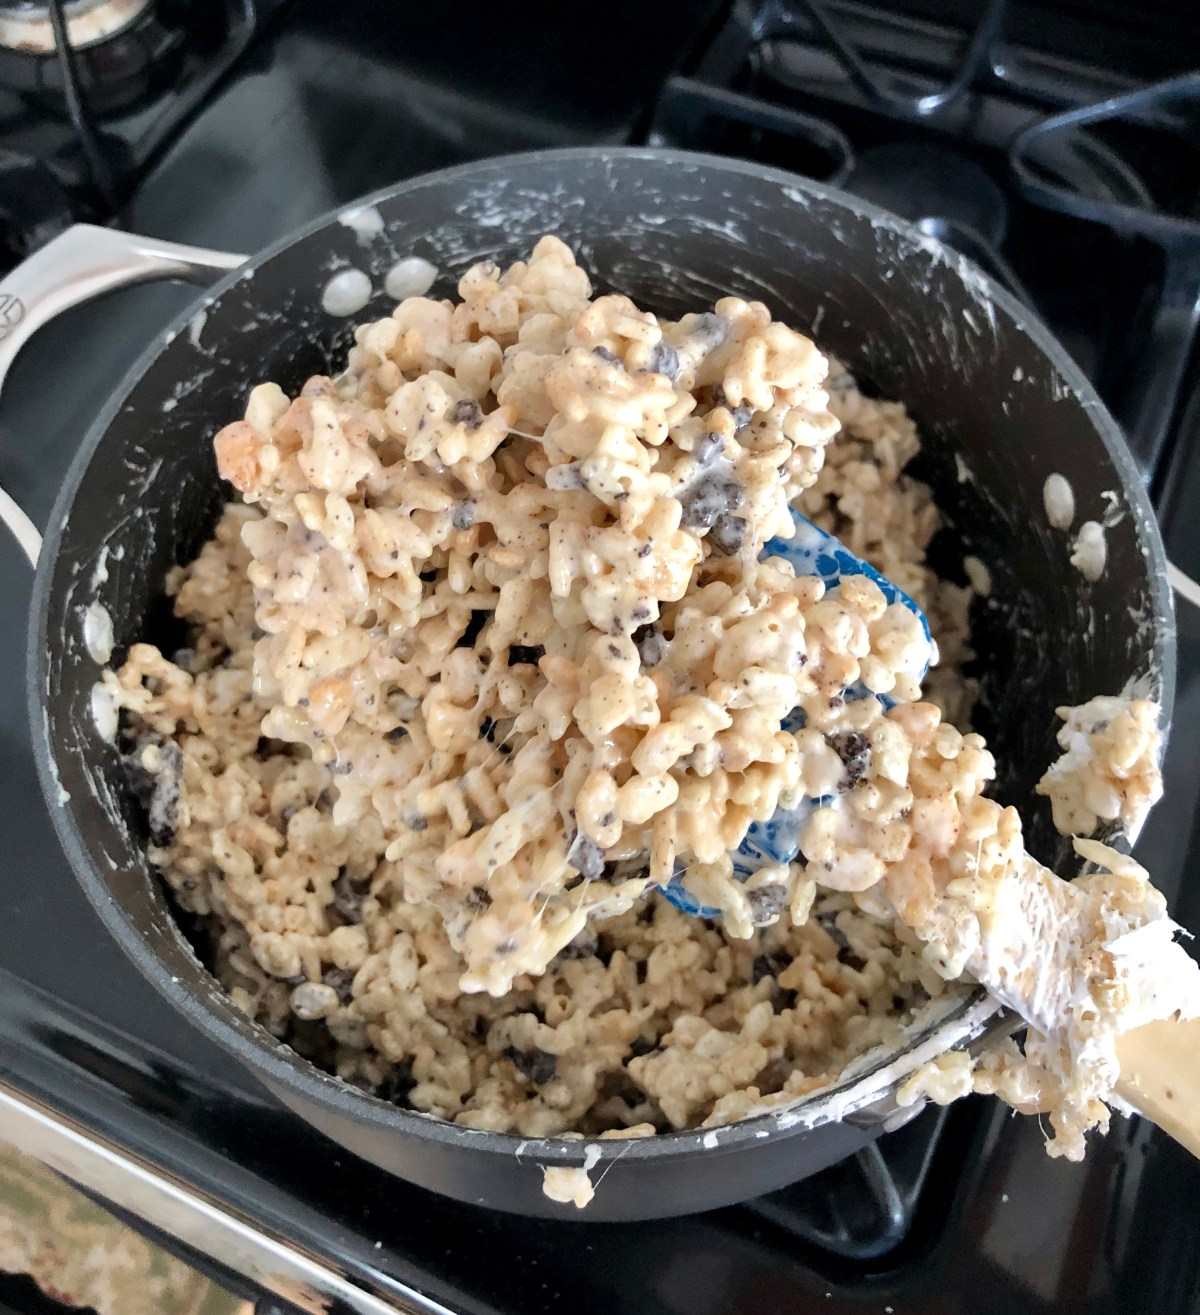 Oreo cookie chunks and Rice Krispies cereal coated in marshmallow in a Dutch oven.